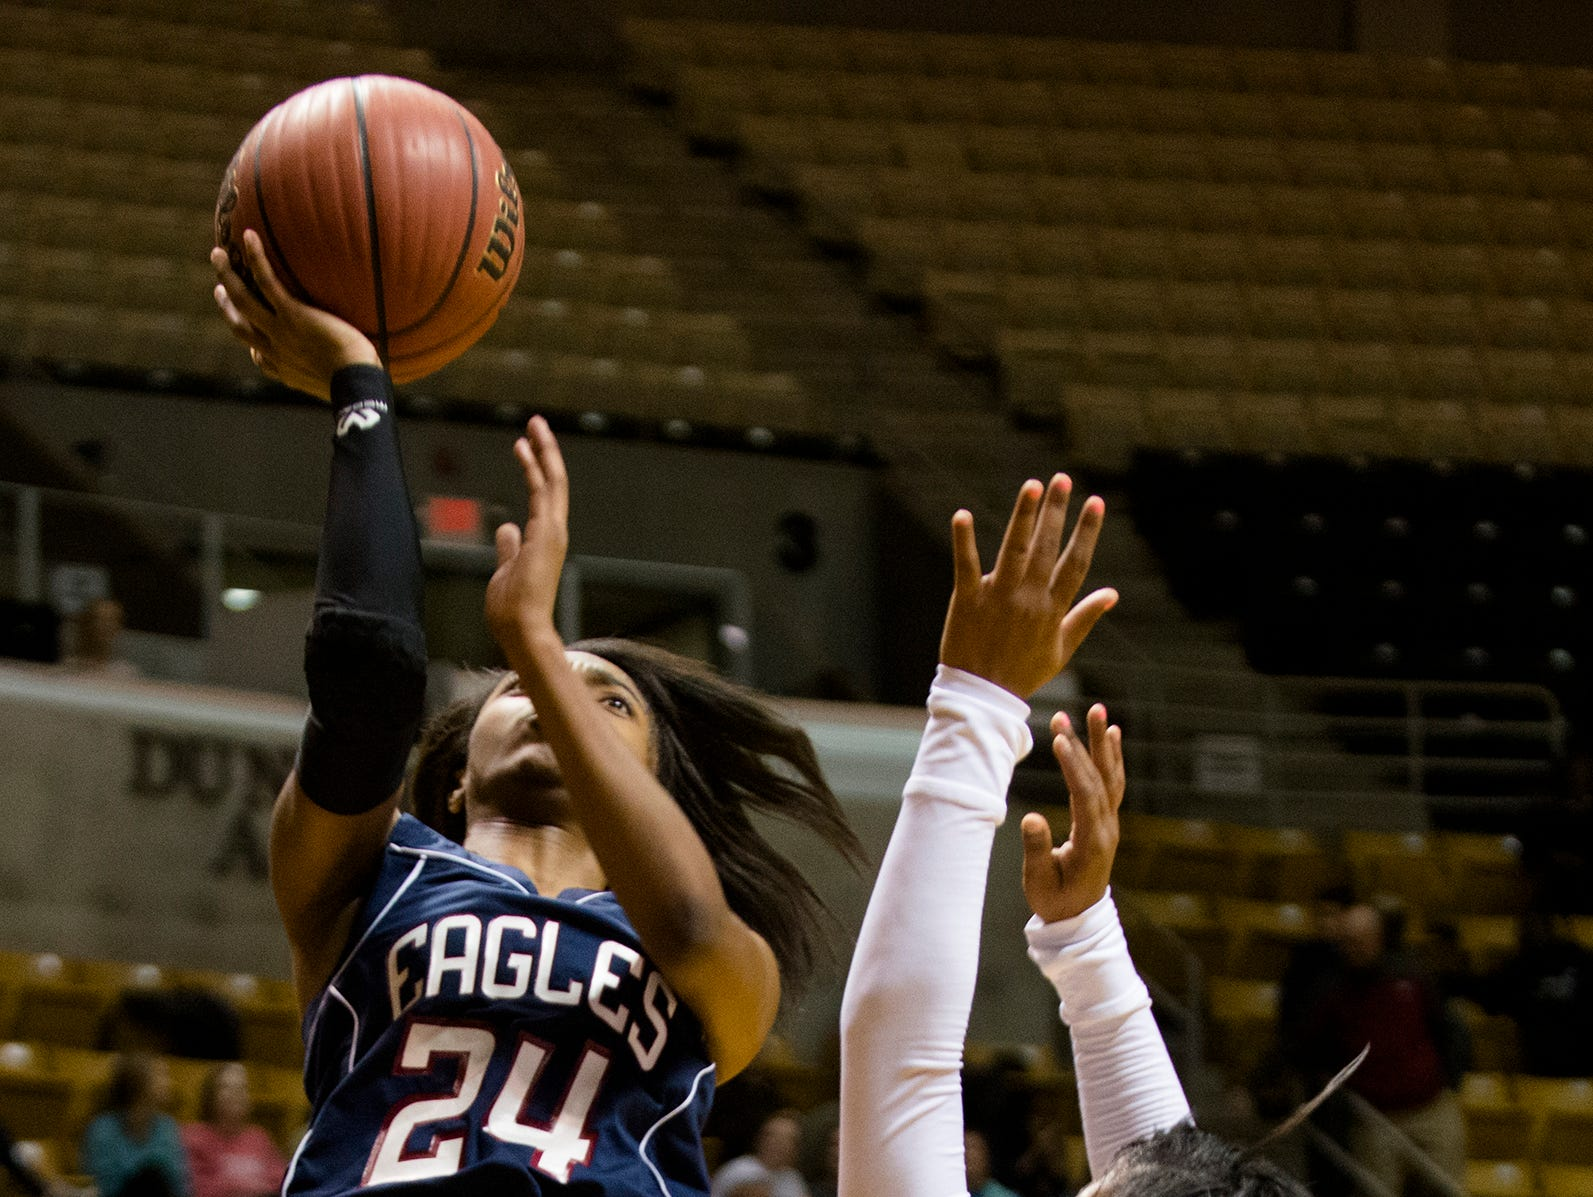 Montgomery Academy's Jade Brooks (24) shoots over Midfield's Kierra Hicks (5) during the AHSAA Class 3A Central Regional Championship on Thursday, Feb. 19, 2015, at the Dunn-Oliver Acadome in Montgomery, Ala.